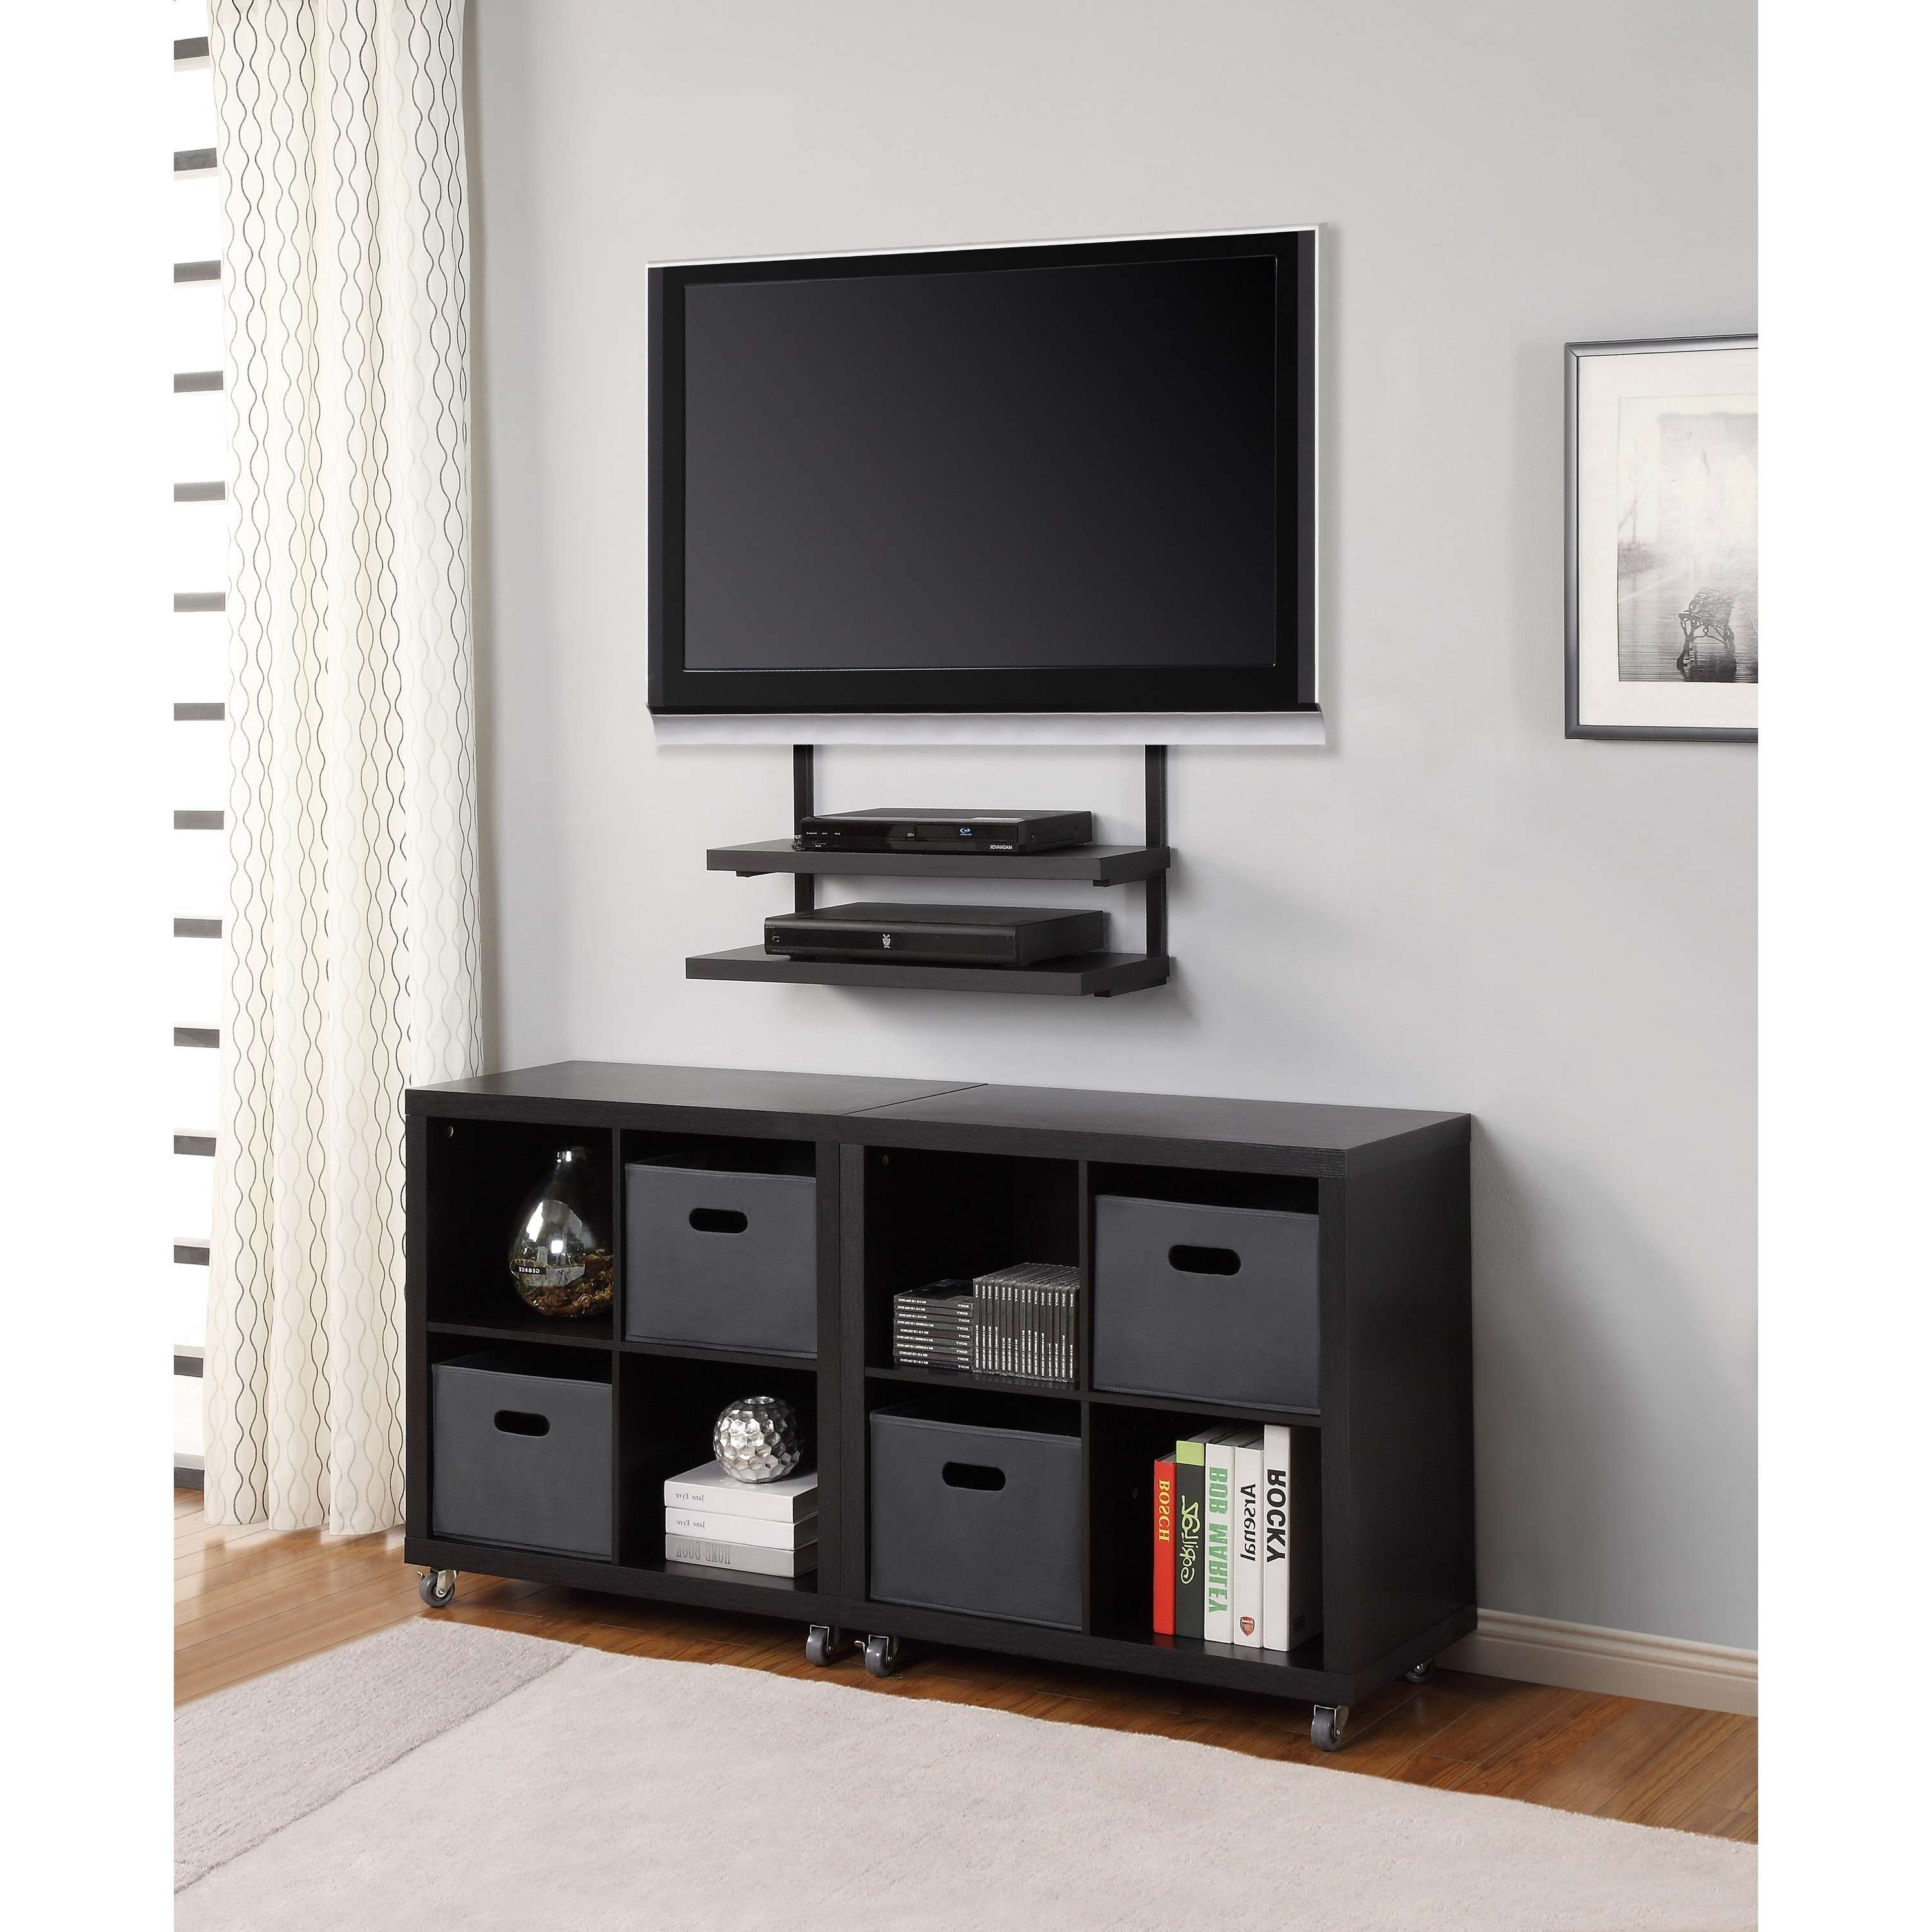 Tv Stands For Bedroom Dressers Ideas With Small Apartment Picture With Tv Stands With Baskets (View 8 of 15)